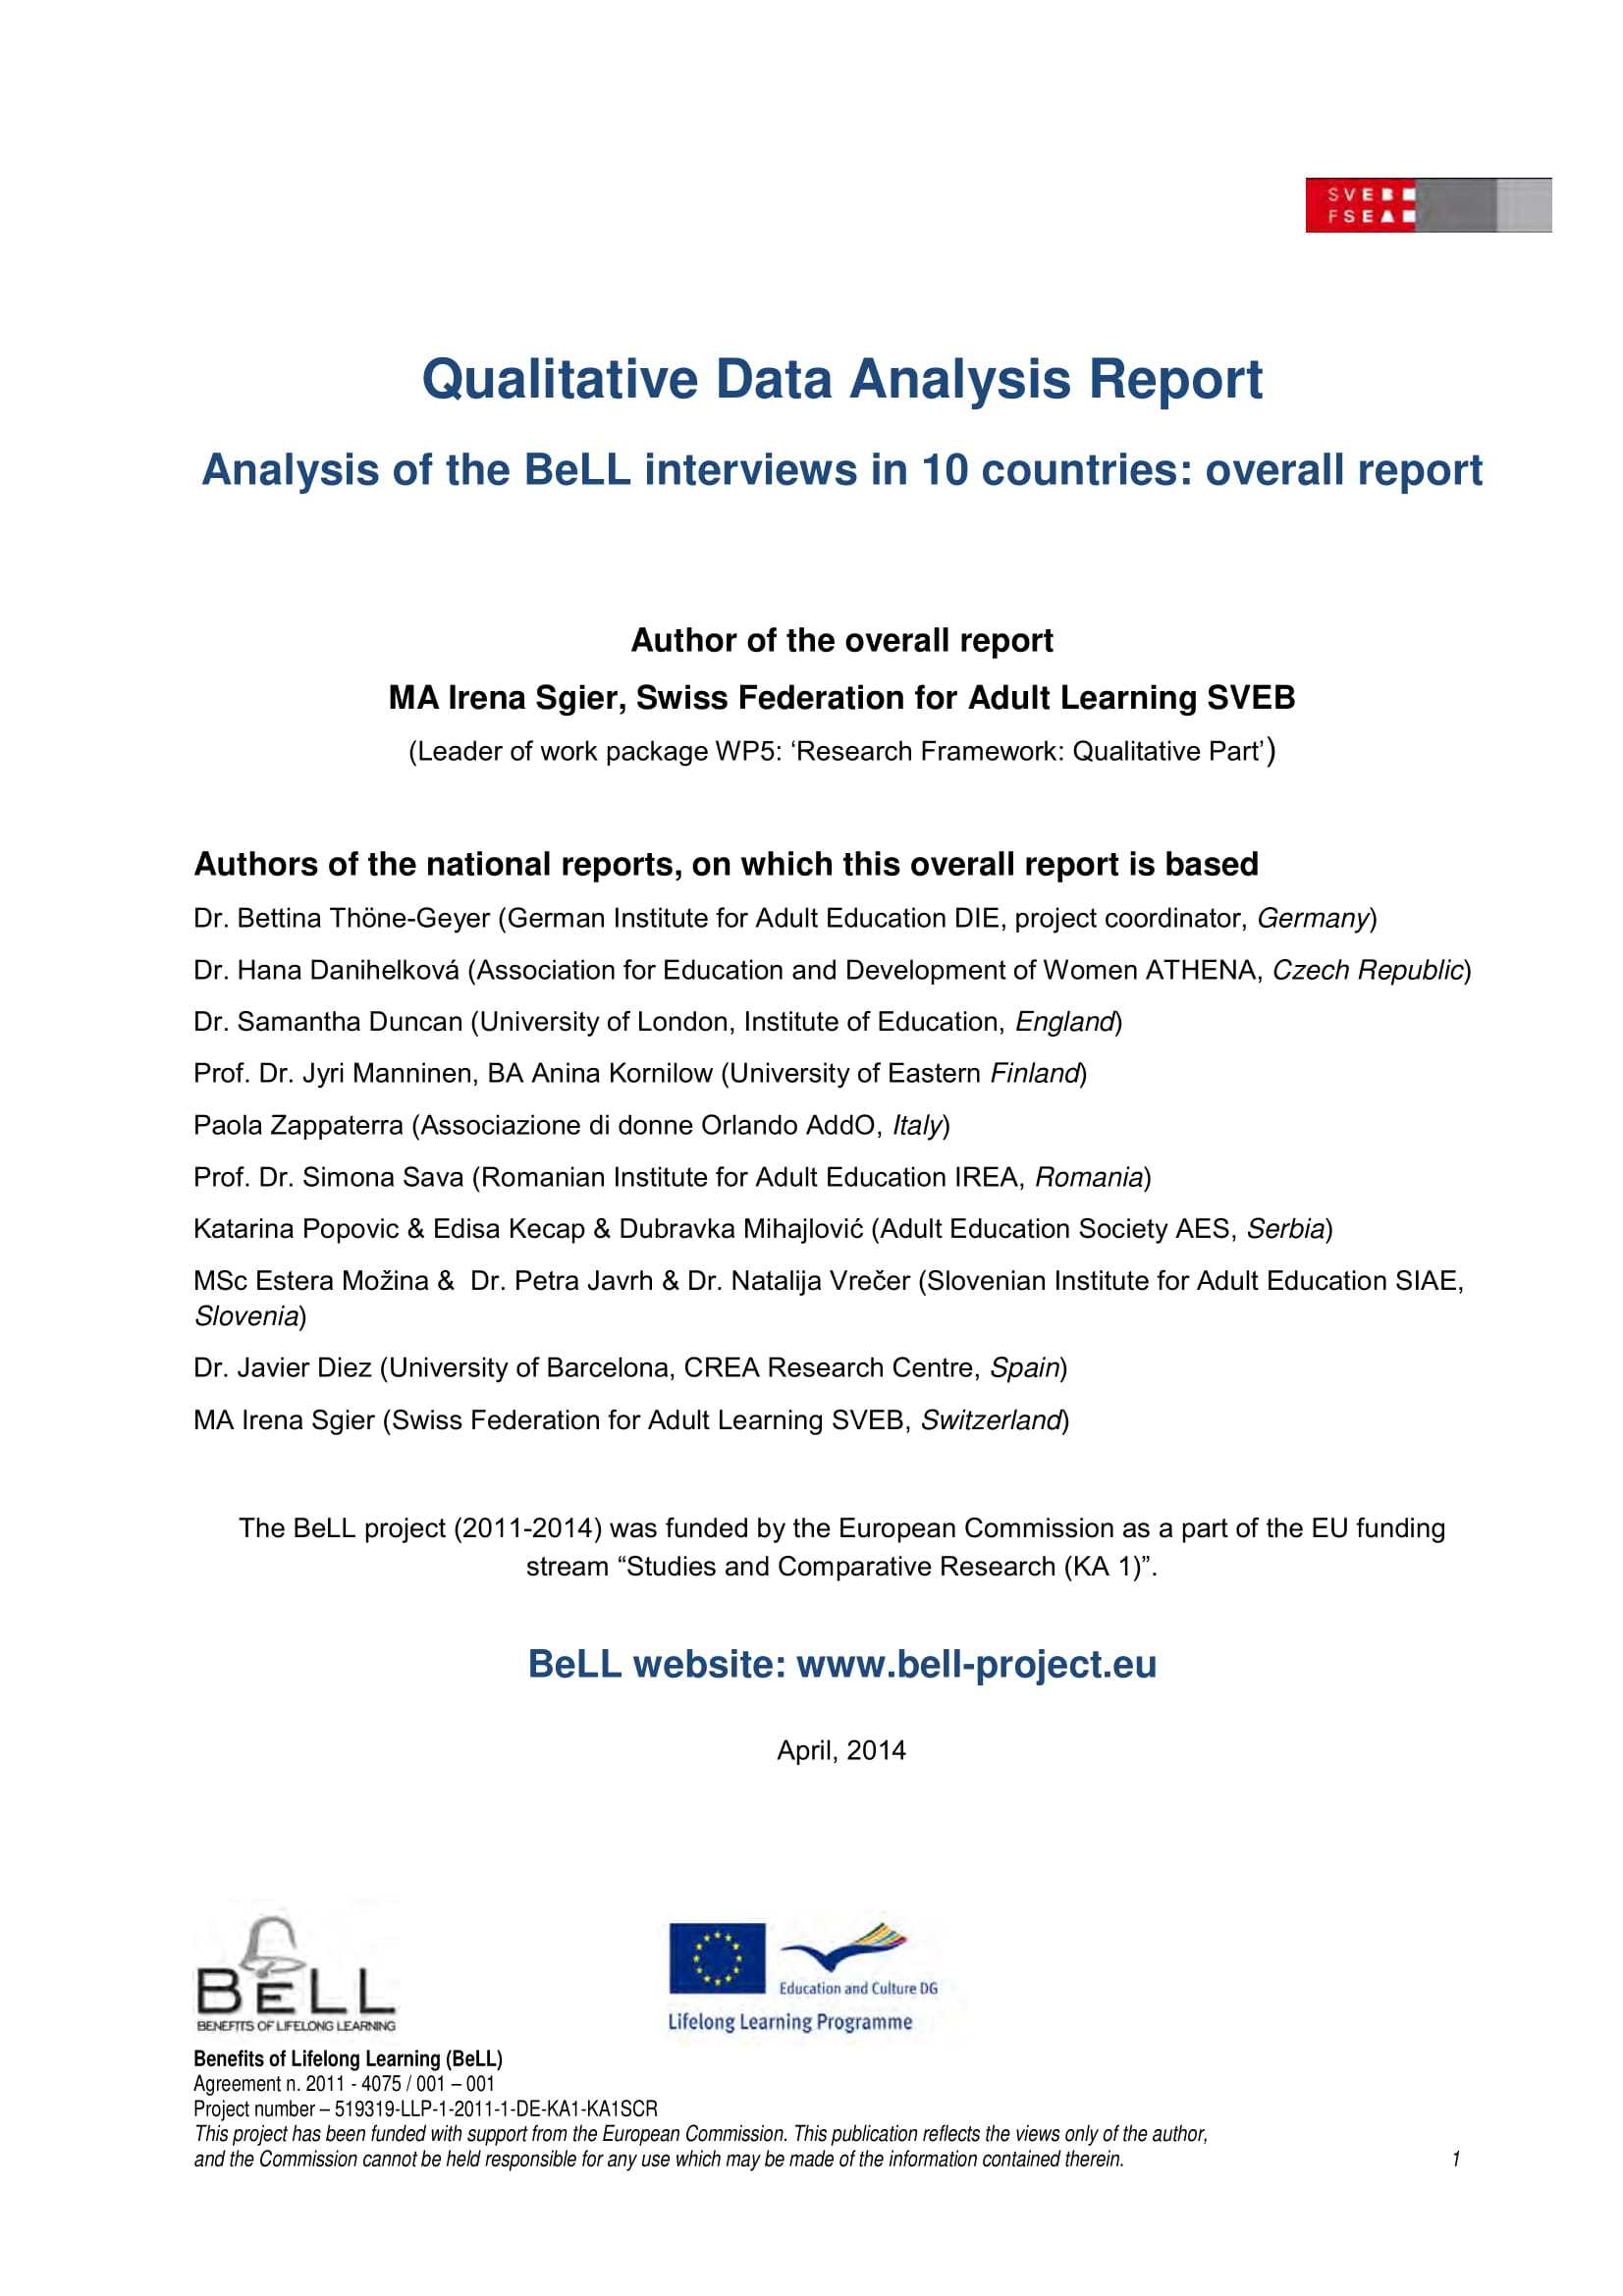 10 Data Analysis Report Examples - Pdf | Examples In Analytical Report Template